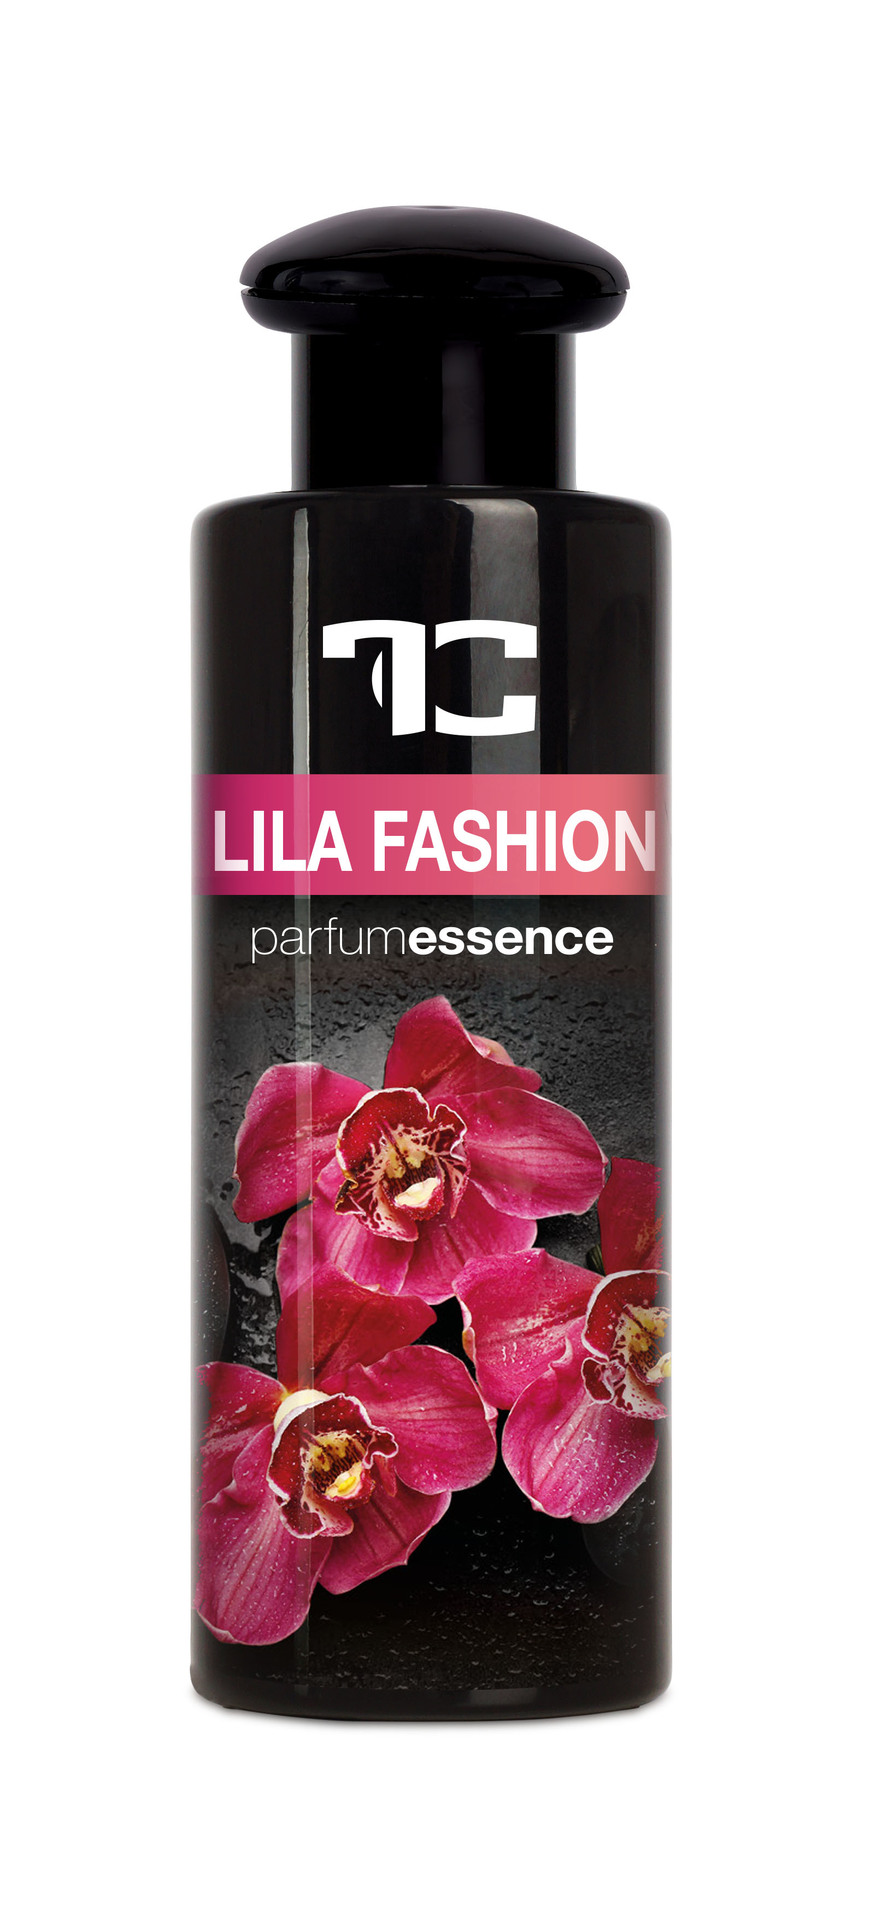 https://dedra.blob.core.windows.net/cms/ContentItems/2864_parfum-essence-lila-fashion-koncentrovana-parfemova-esence/images/fc0391-lila-fashion-parfum-essence-black.jpg